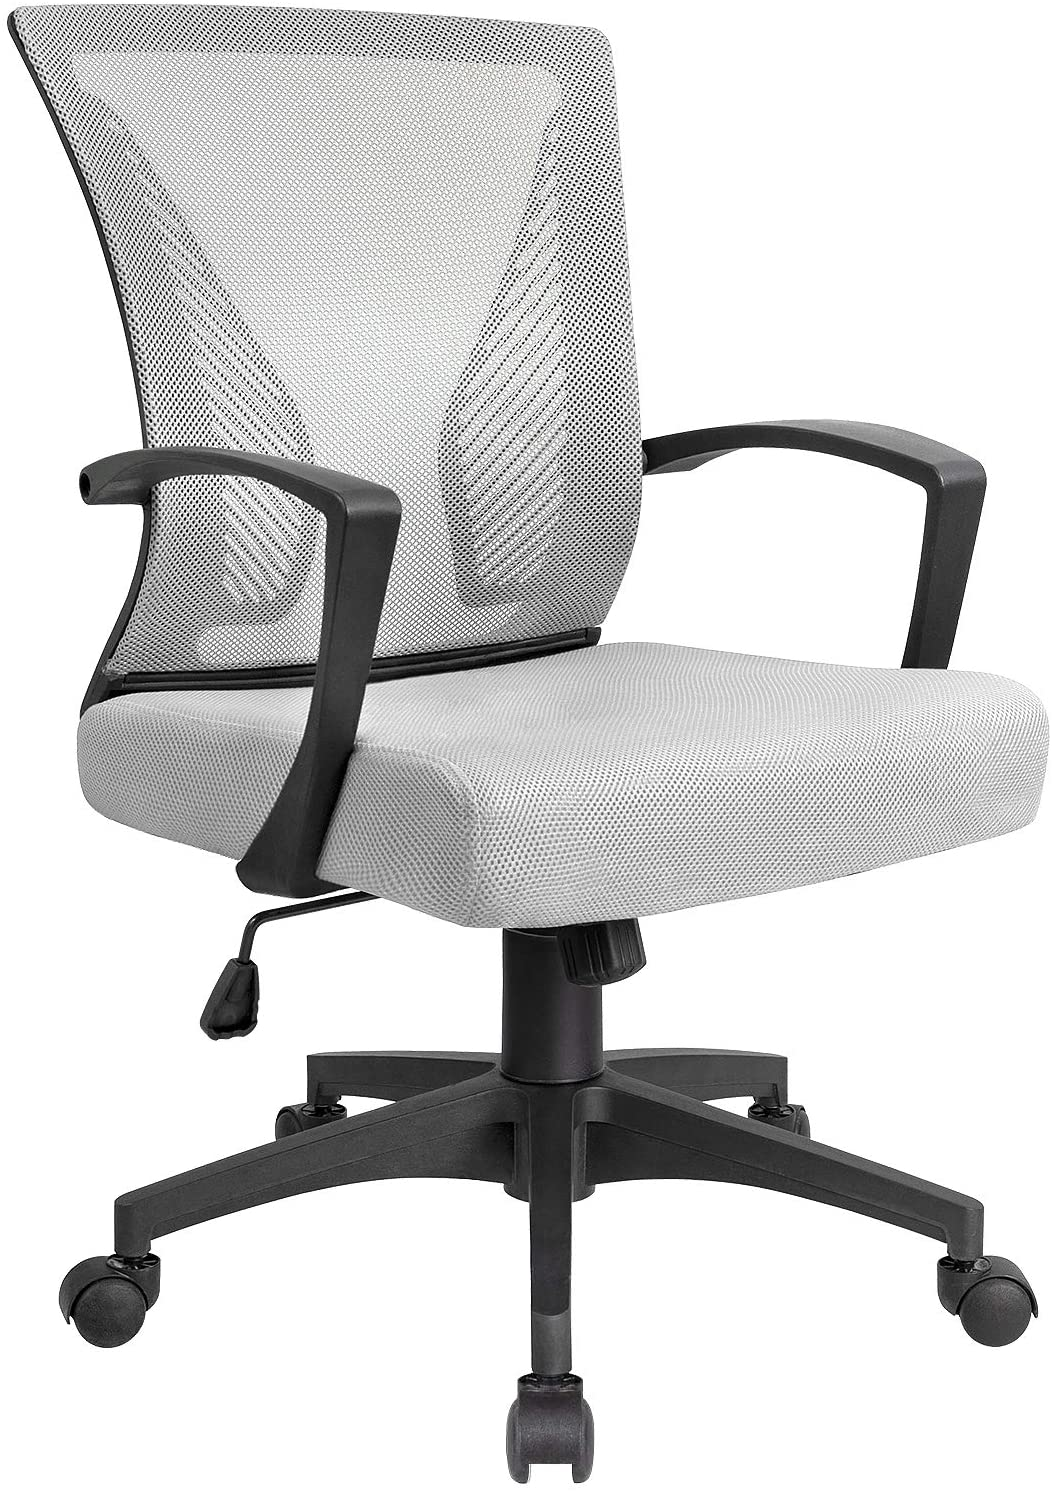 KaiMeng Office Chair Mesh Mid Back Ergonomic Computer Chair with Lumbar Support Swilvel Desk Chair (Grey)